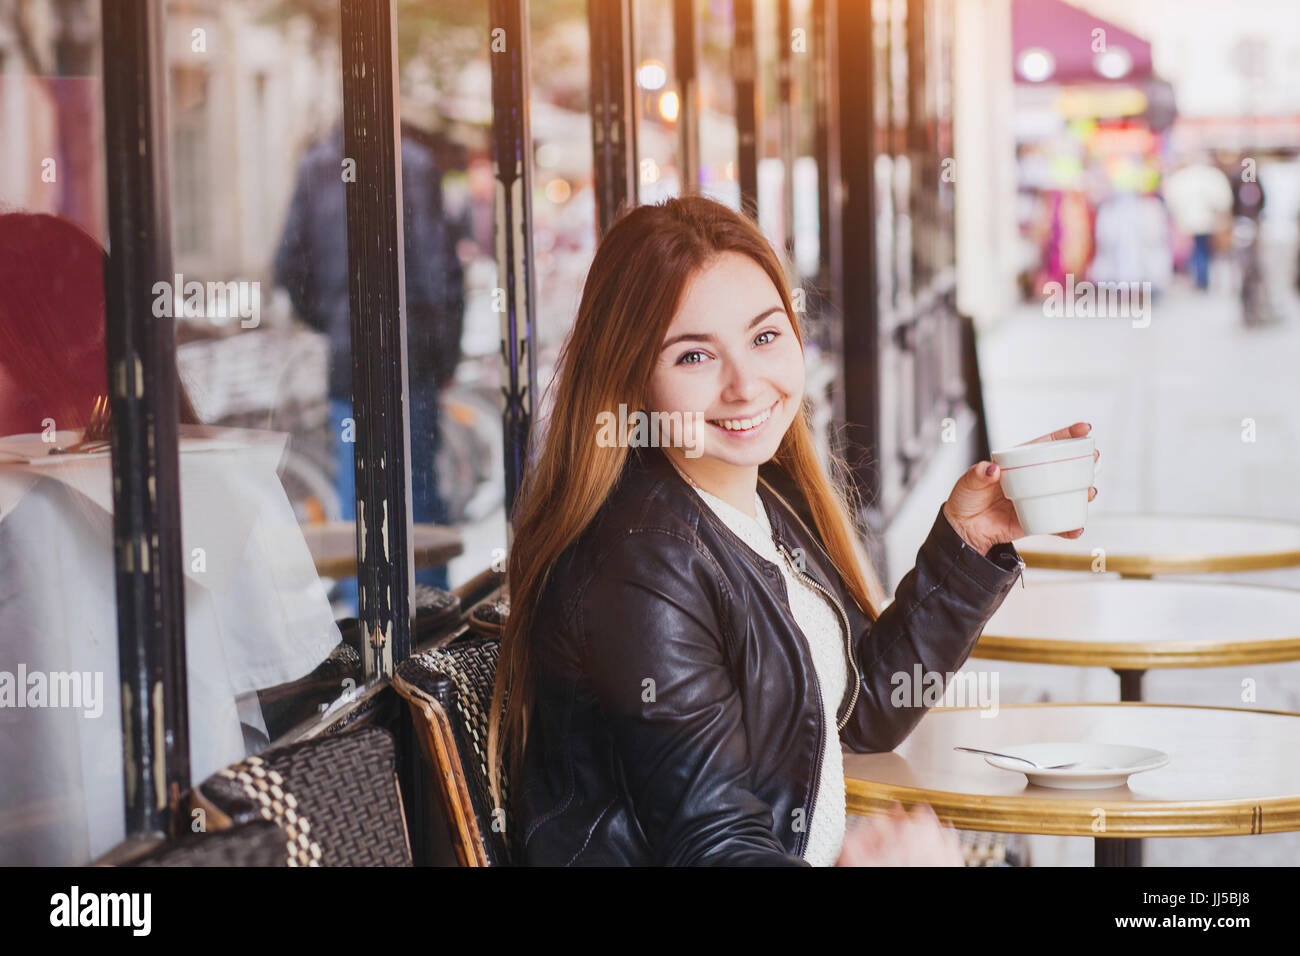 Happy smiling woman drinking coffee in street cafe and looking at camera, bonne humeur Photo Stock